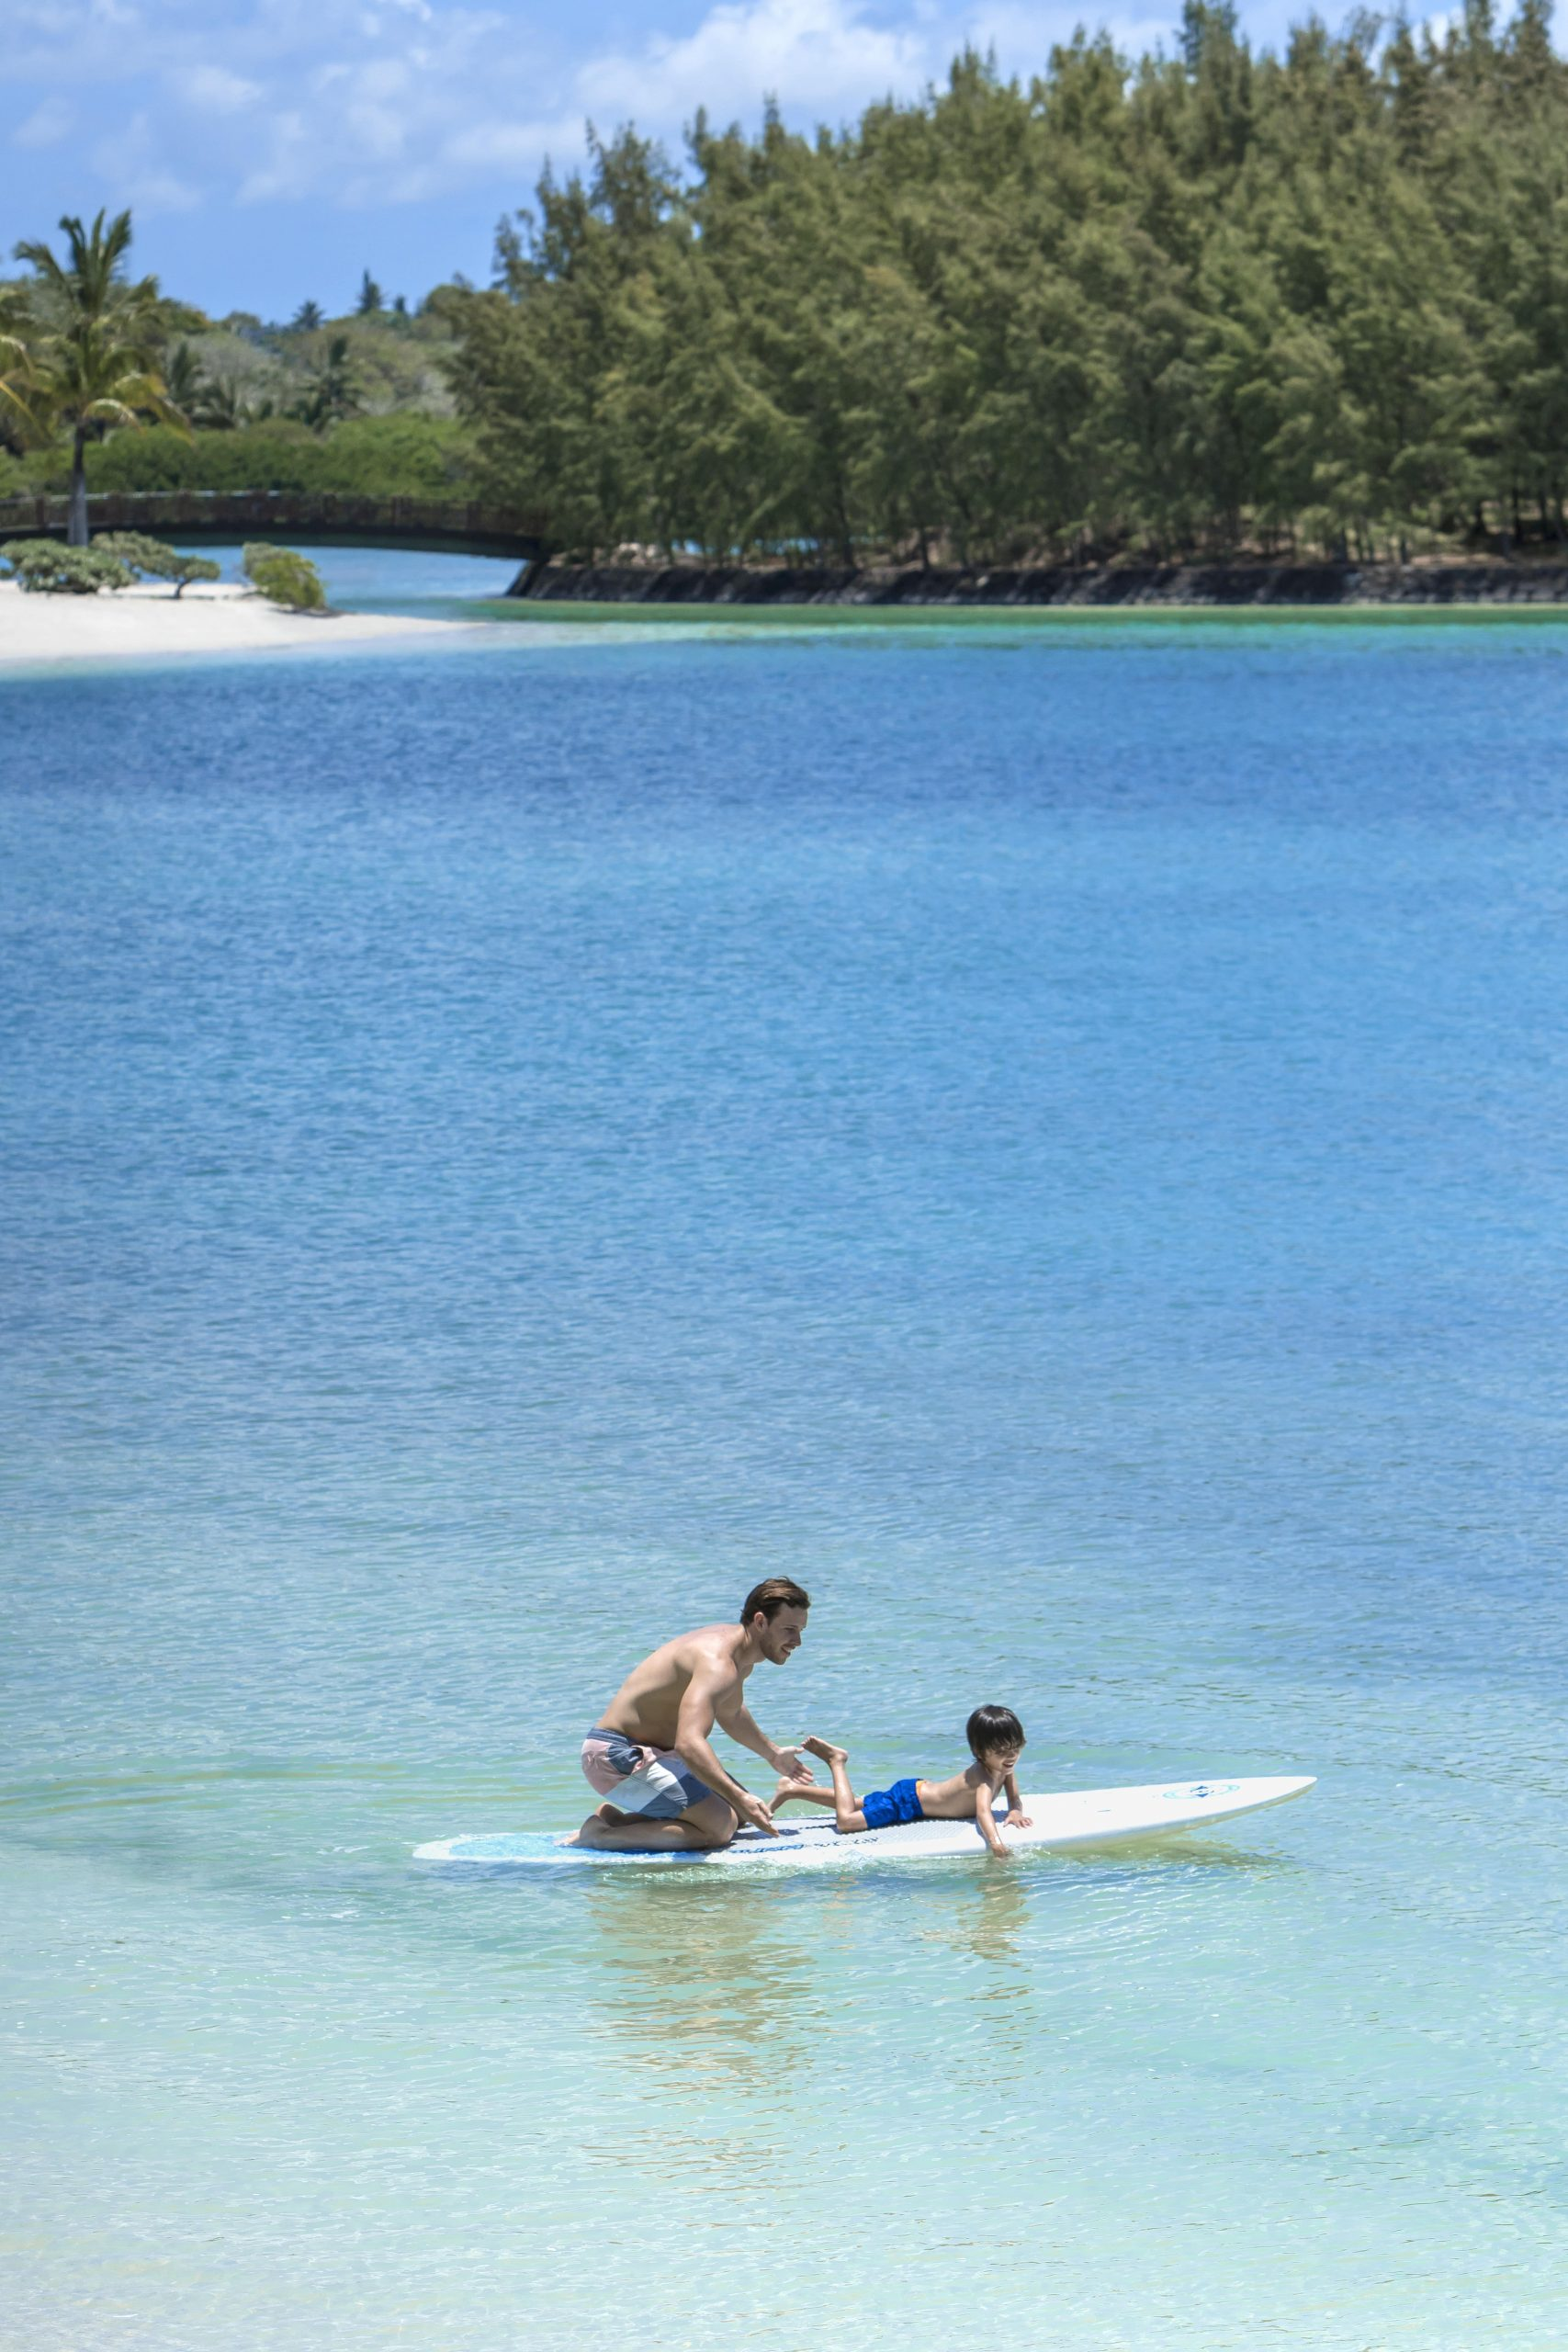 Shangri-La Resort Child paddleboarding